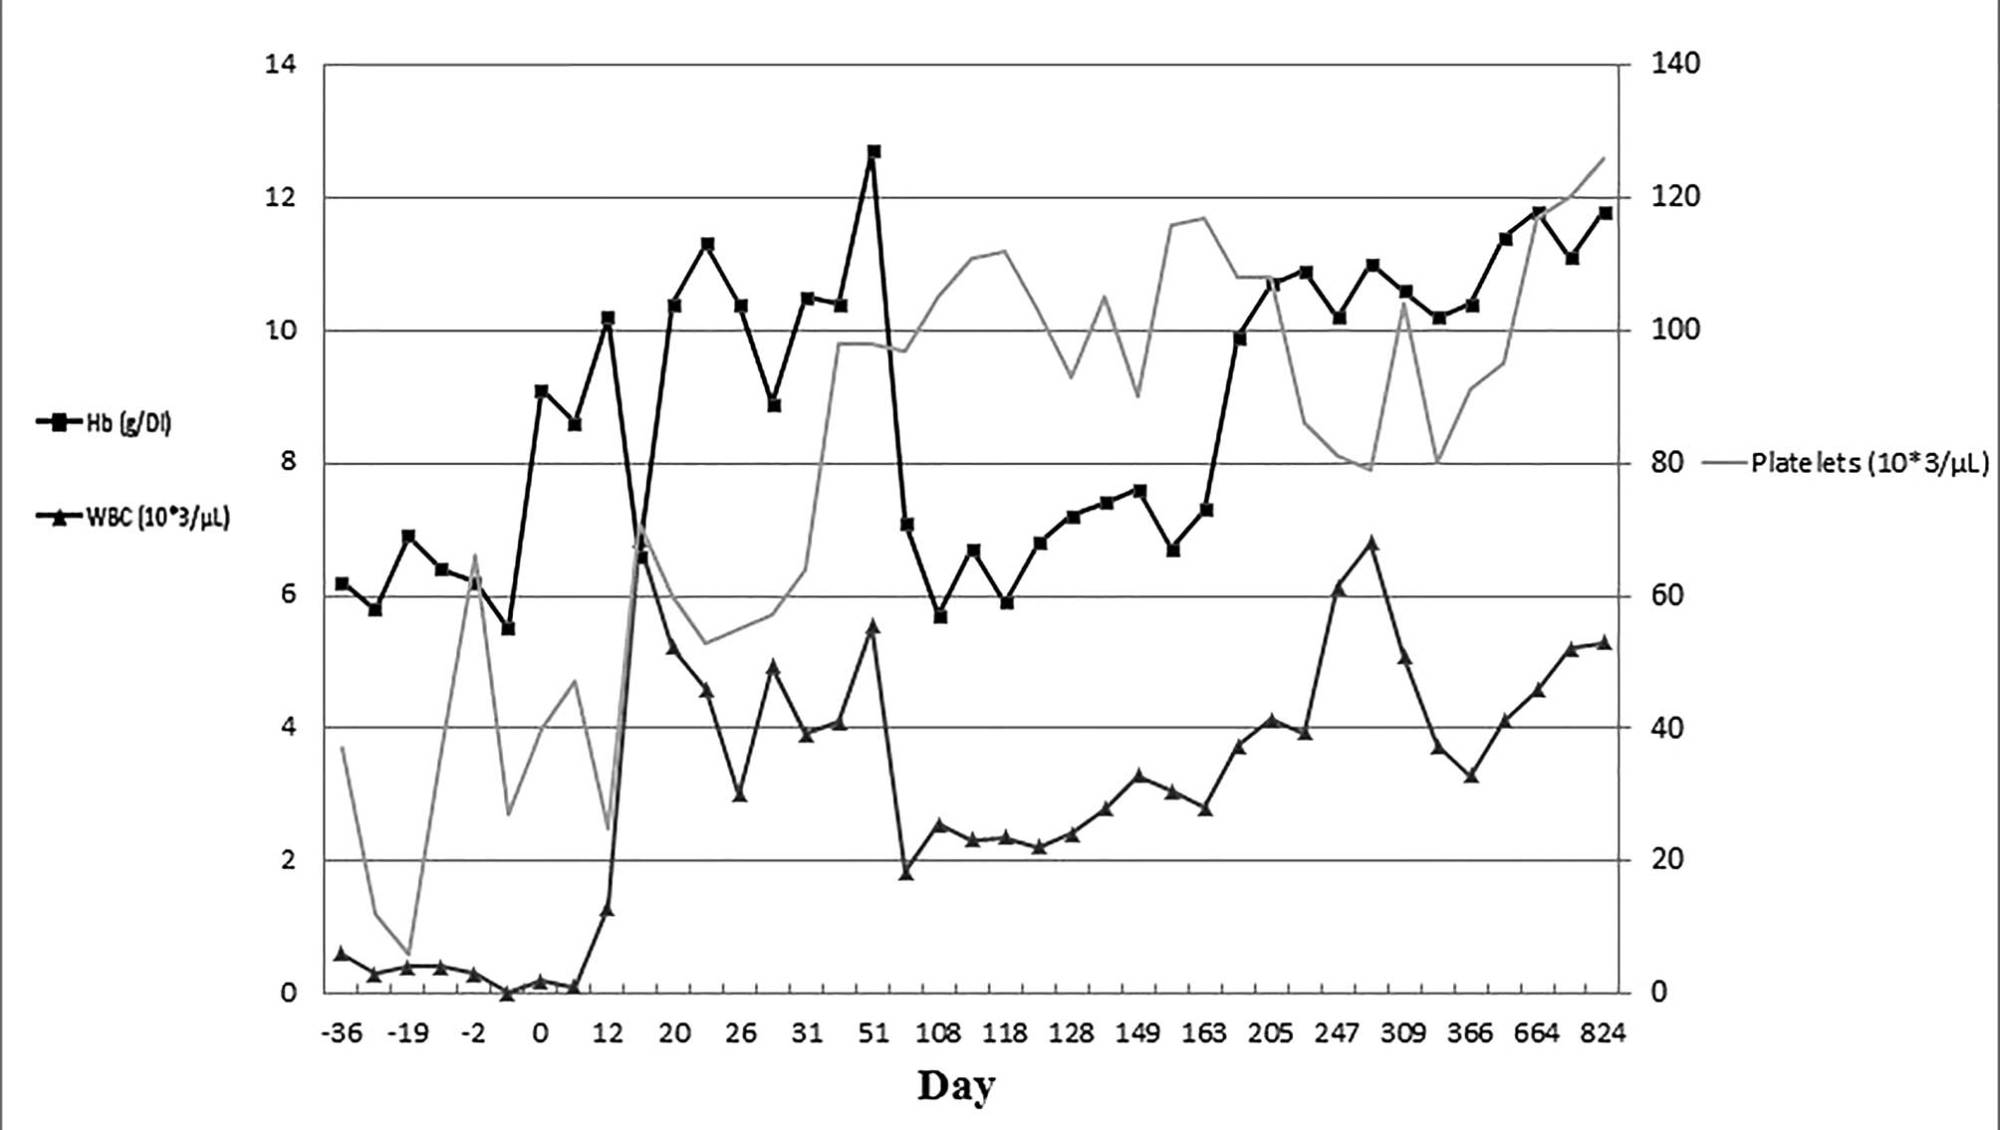 hight resolution of figure 1 cell count changes in the peripheral blood following engraftment hb hemoglobin wbc white blood cell